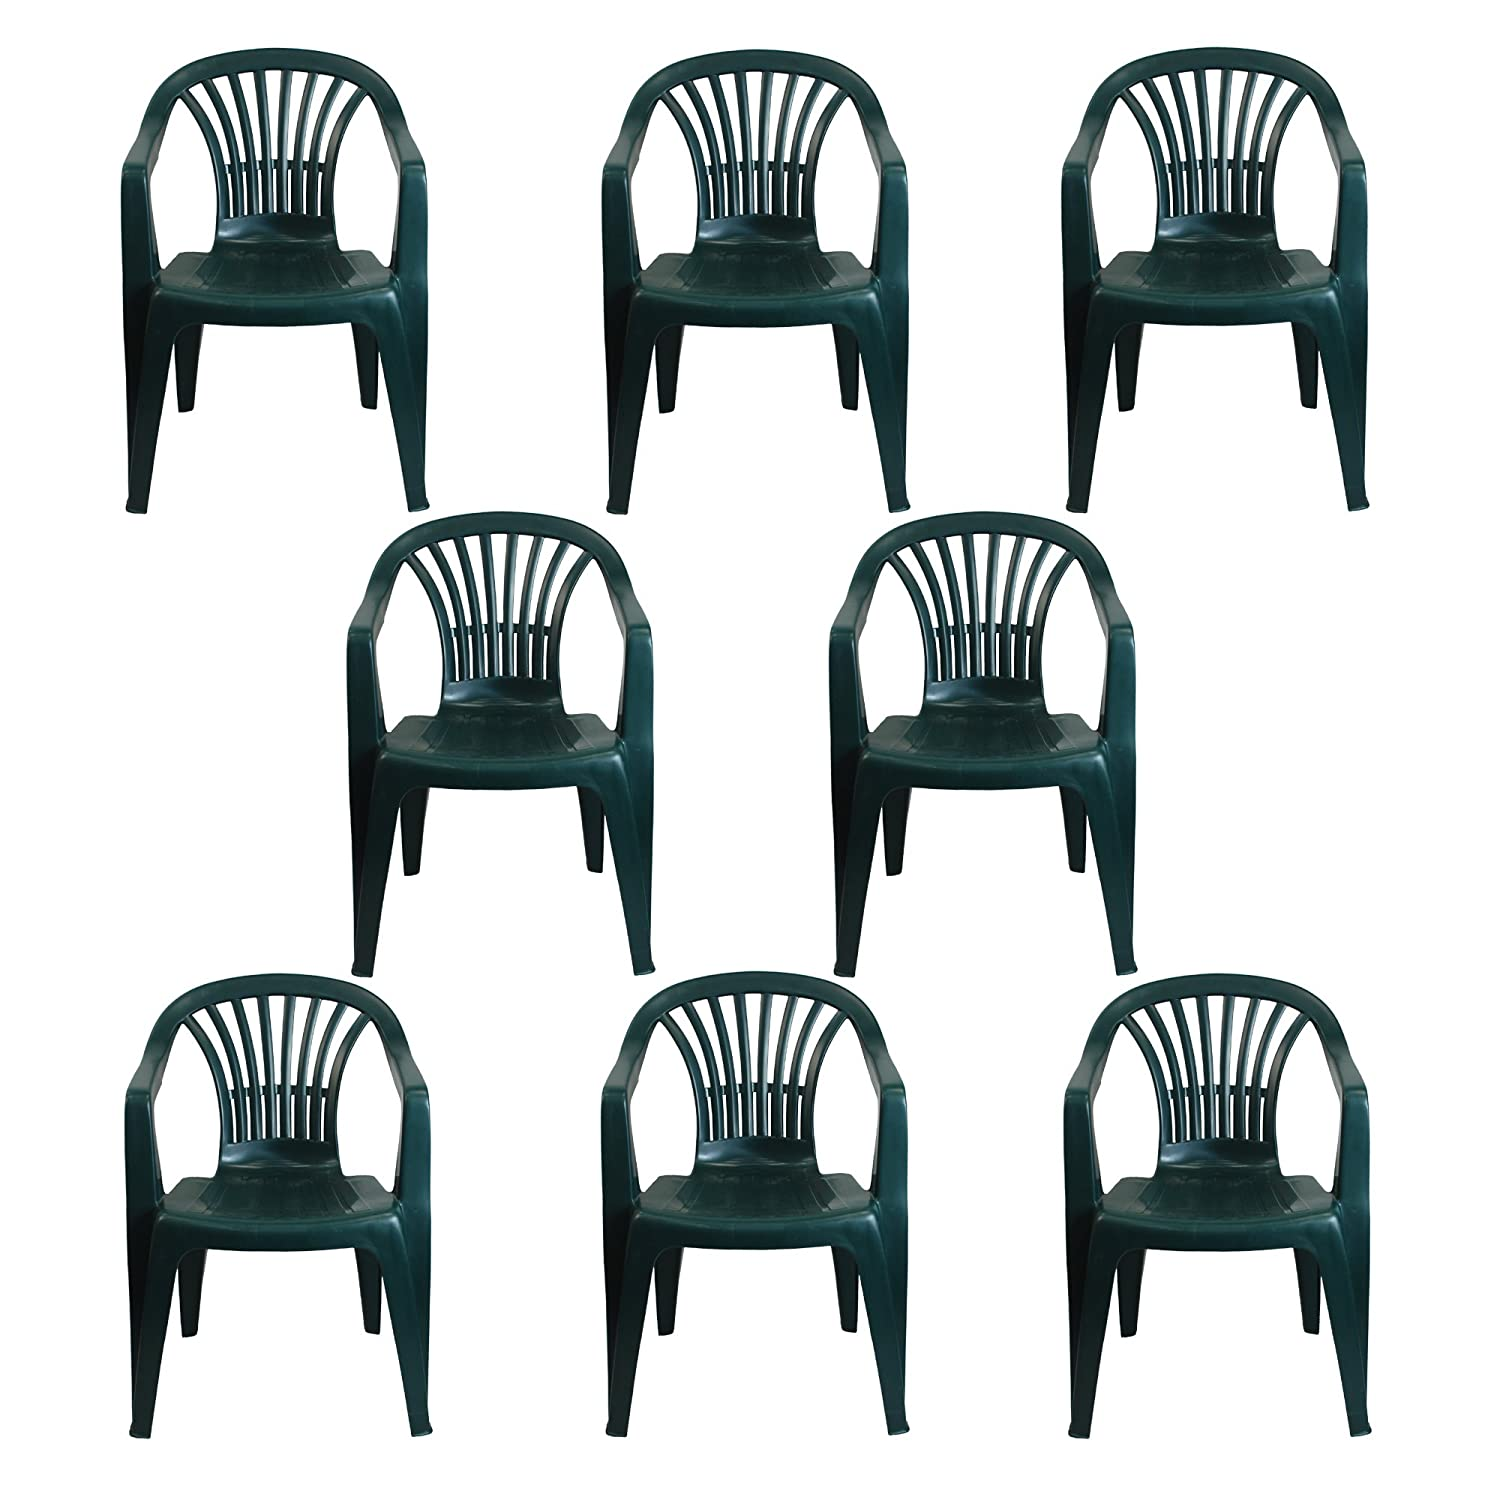 CrazyGadget Plastic Garden Low Back Chair Stackable Patio Outdoor Party Seat Chairs Picnic Green Pack of 8 Simpa